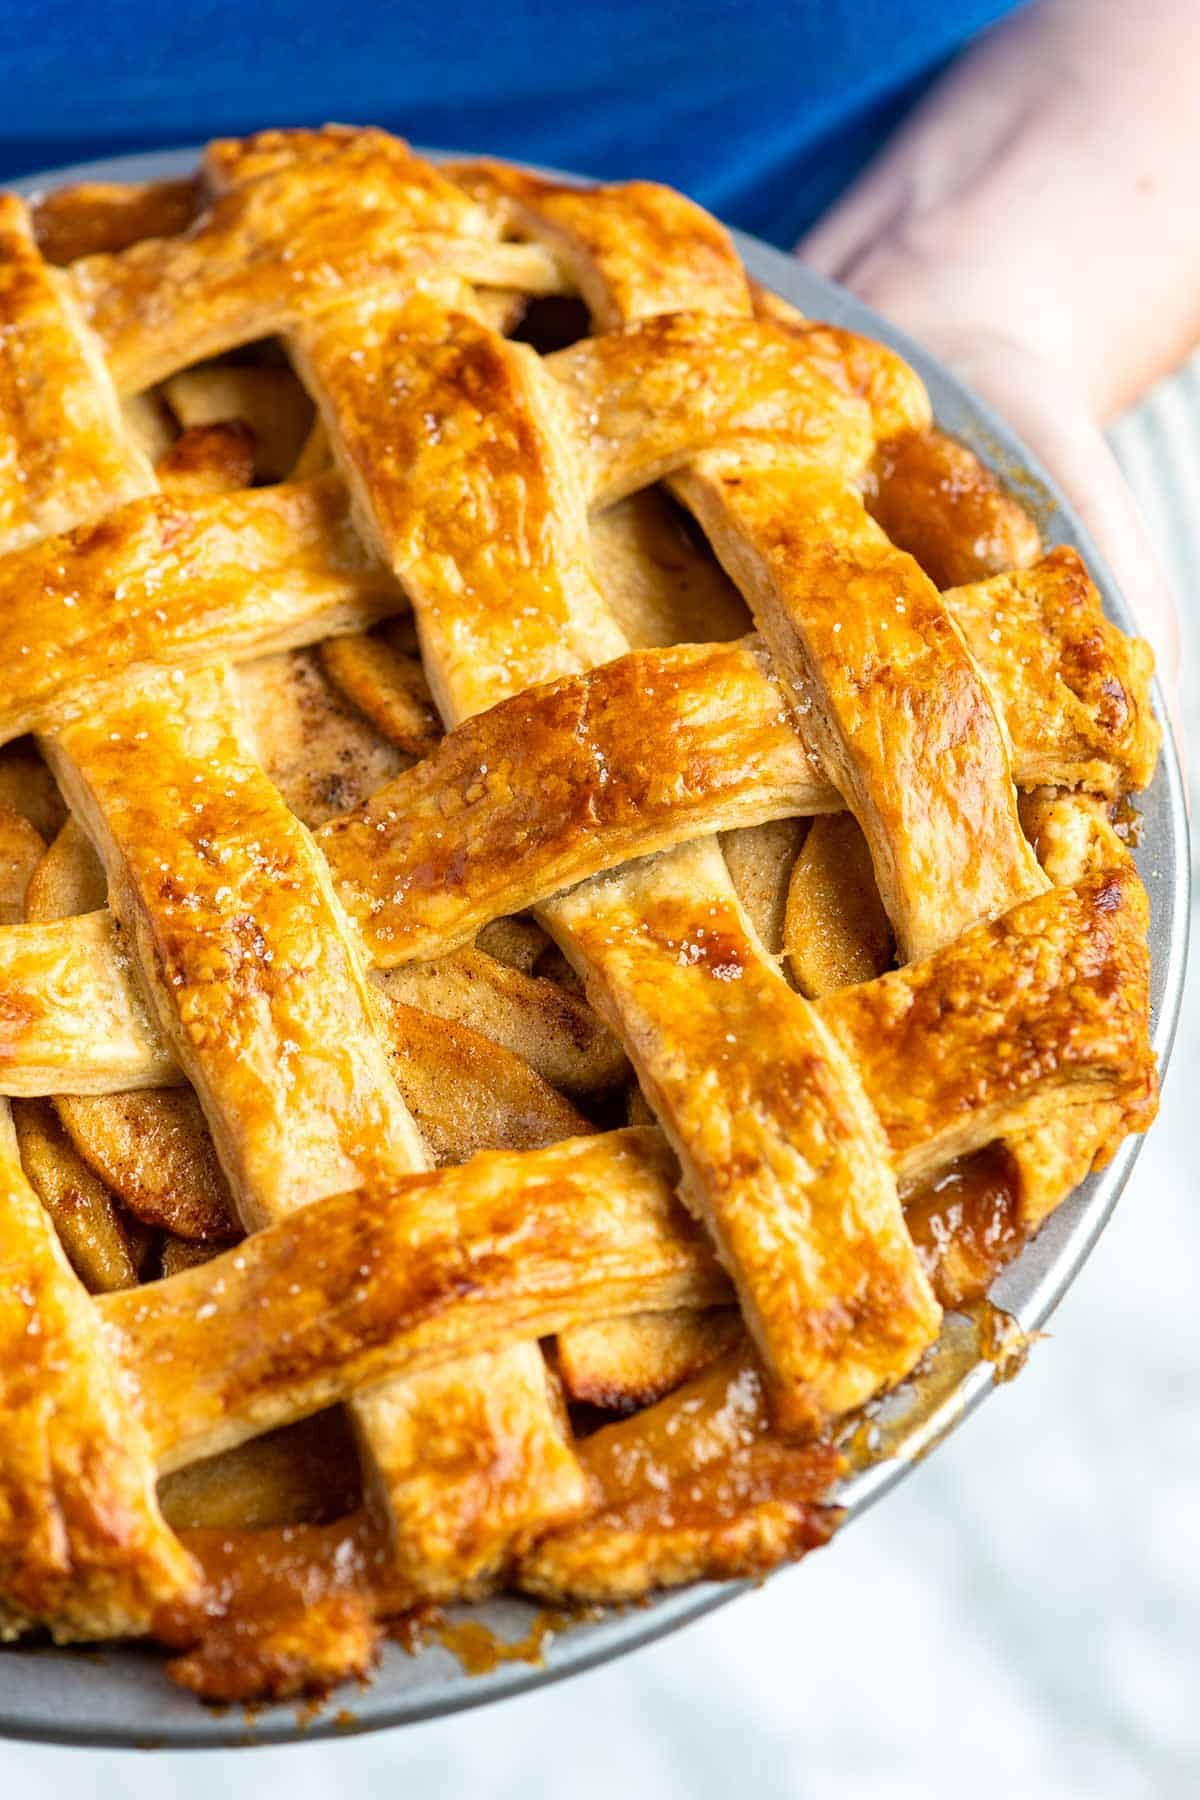 Our Favorite Apple Pie Our favorite recipe for mak